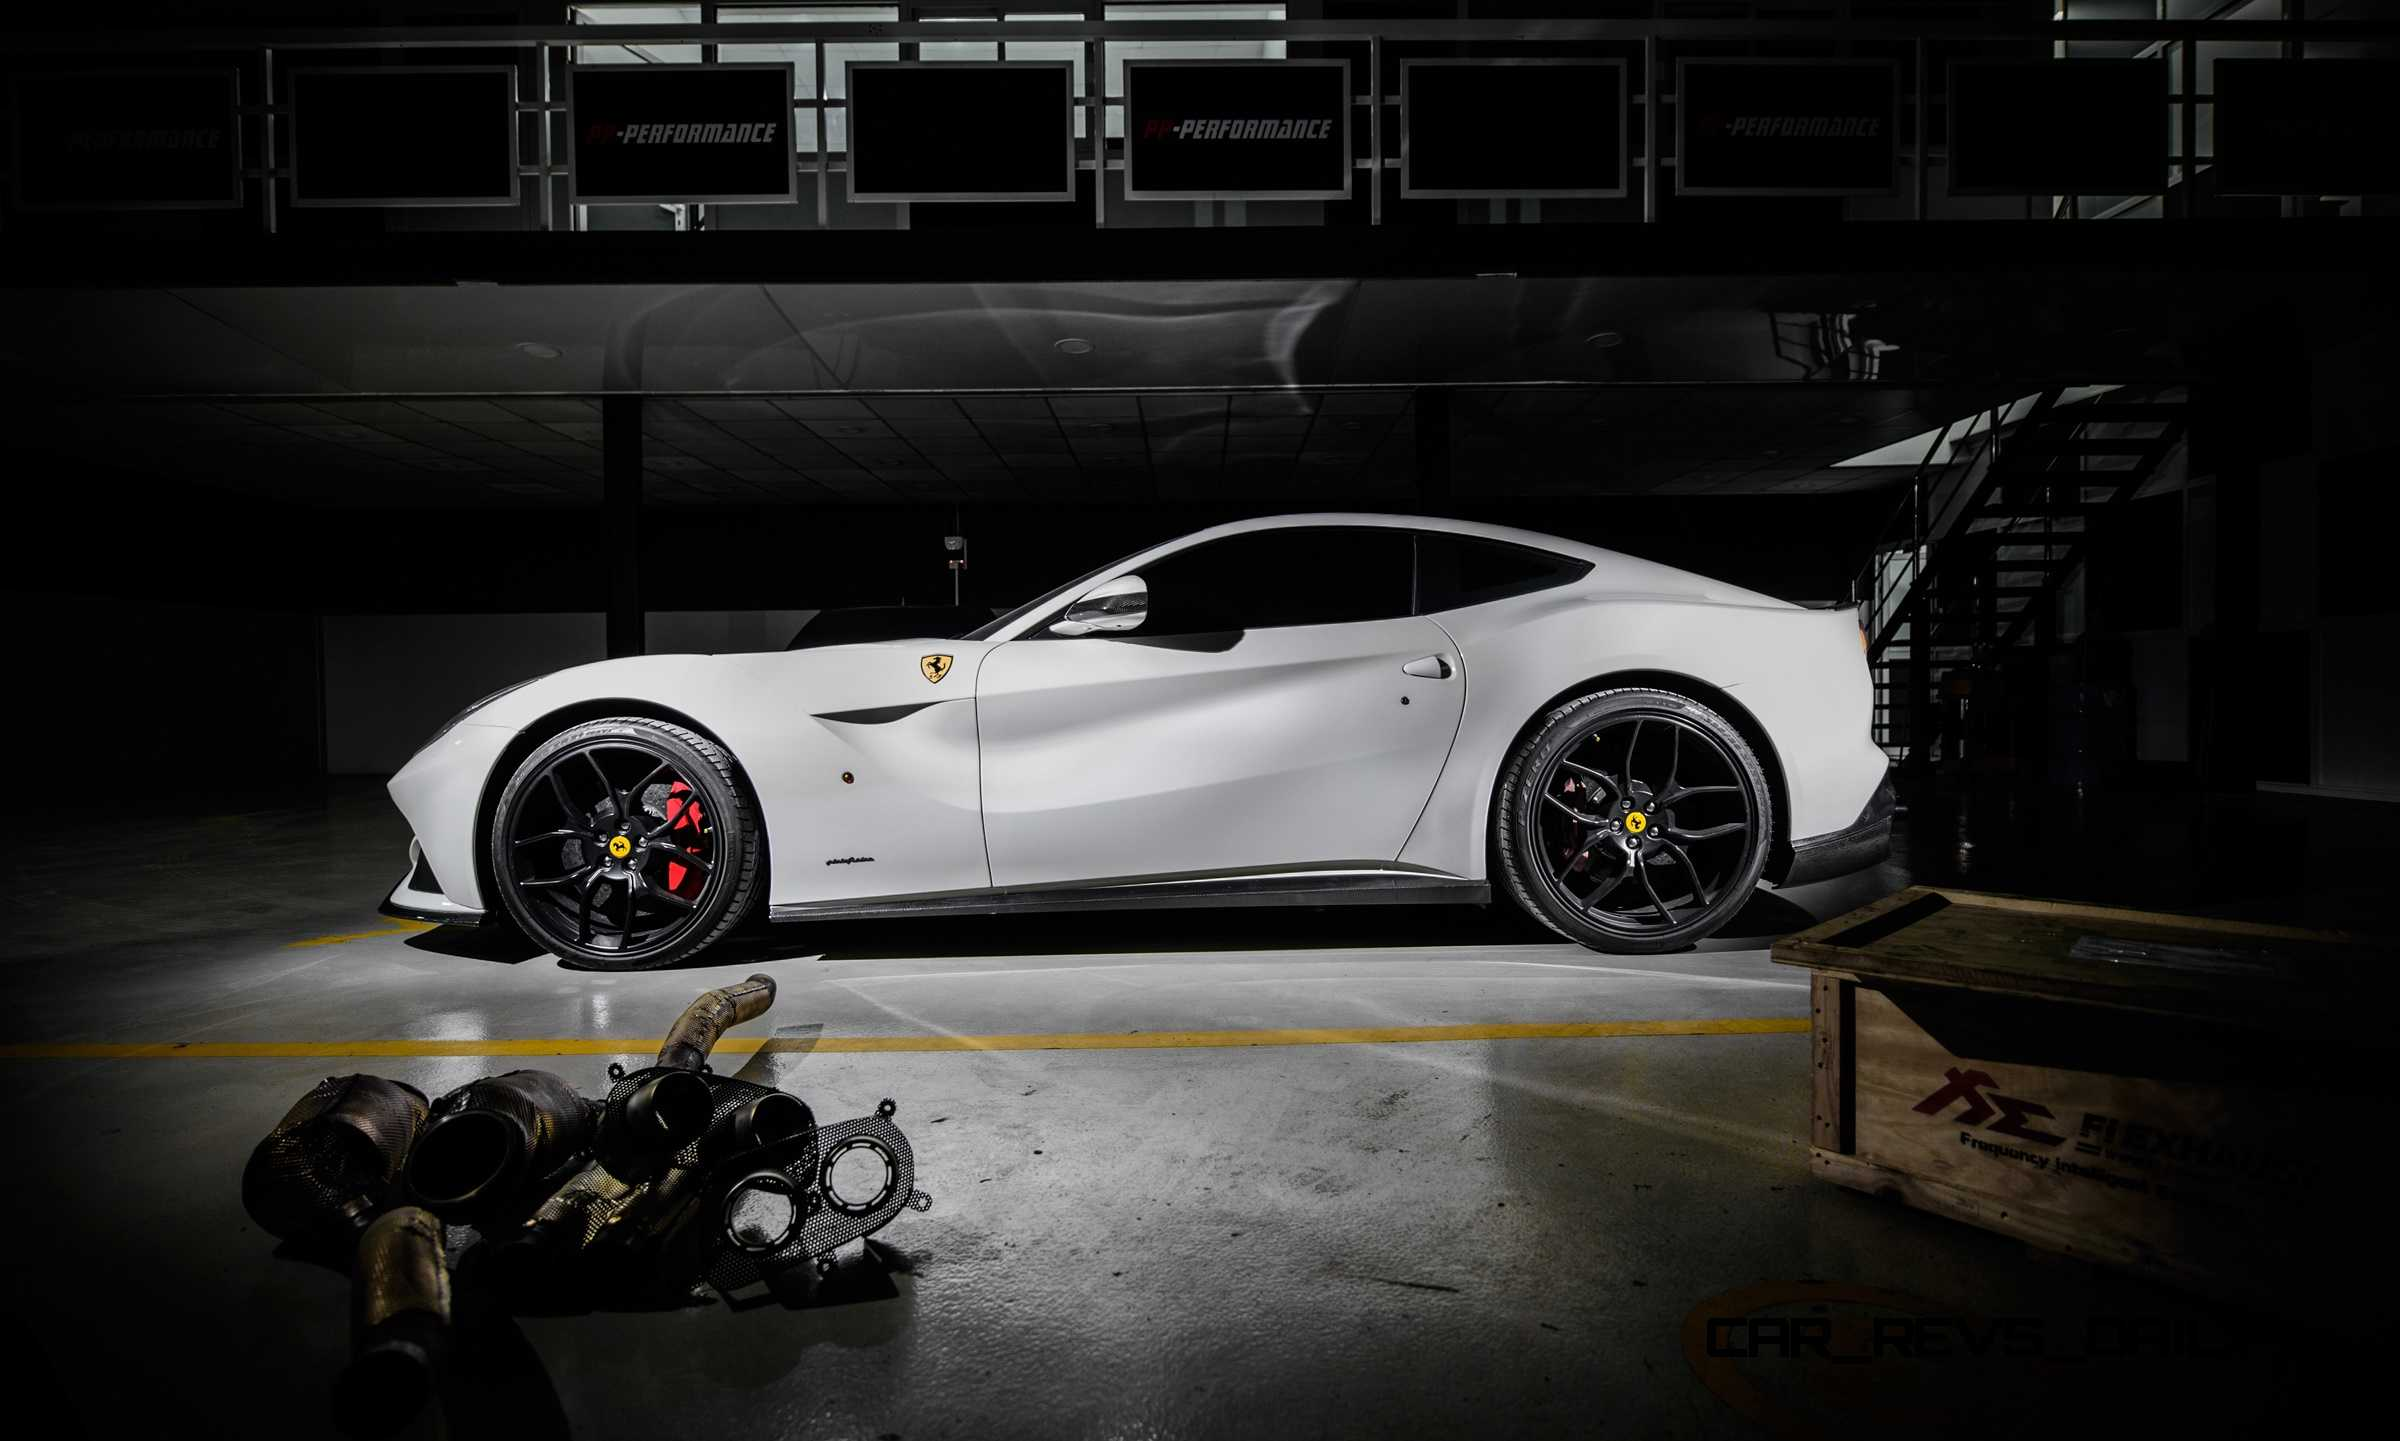 Ferrari F12 Berlinetta By Pp Performance